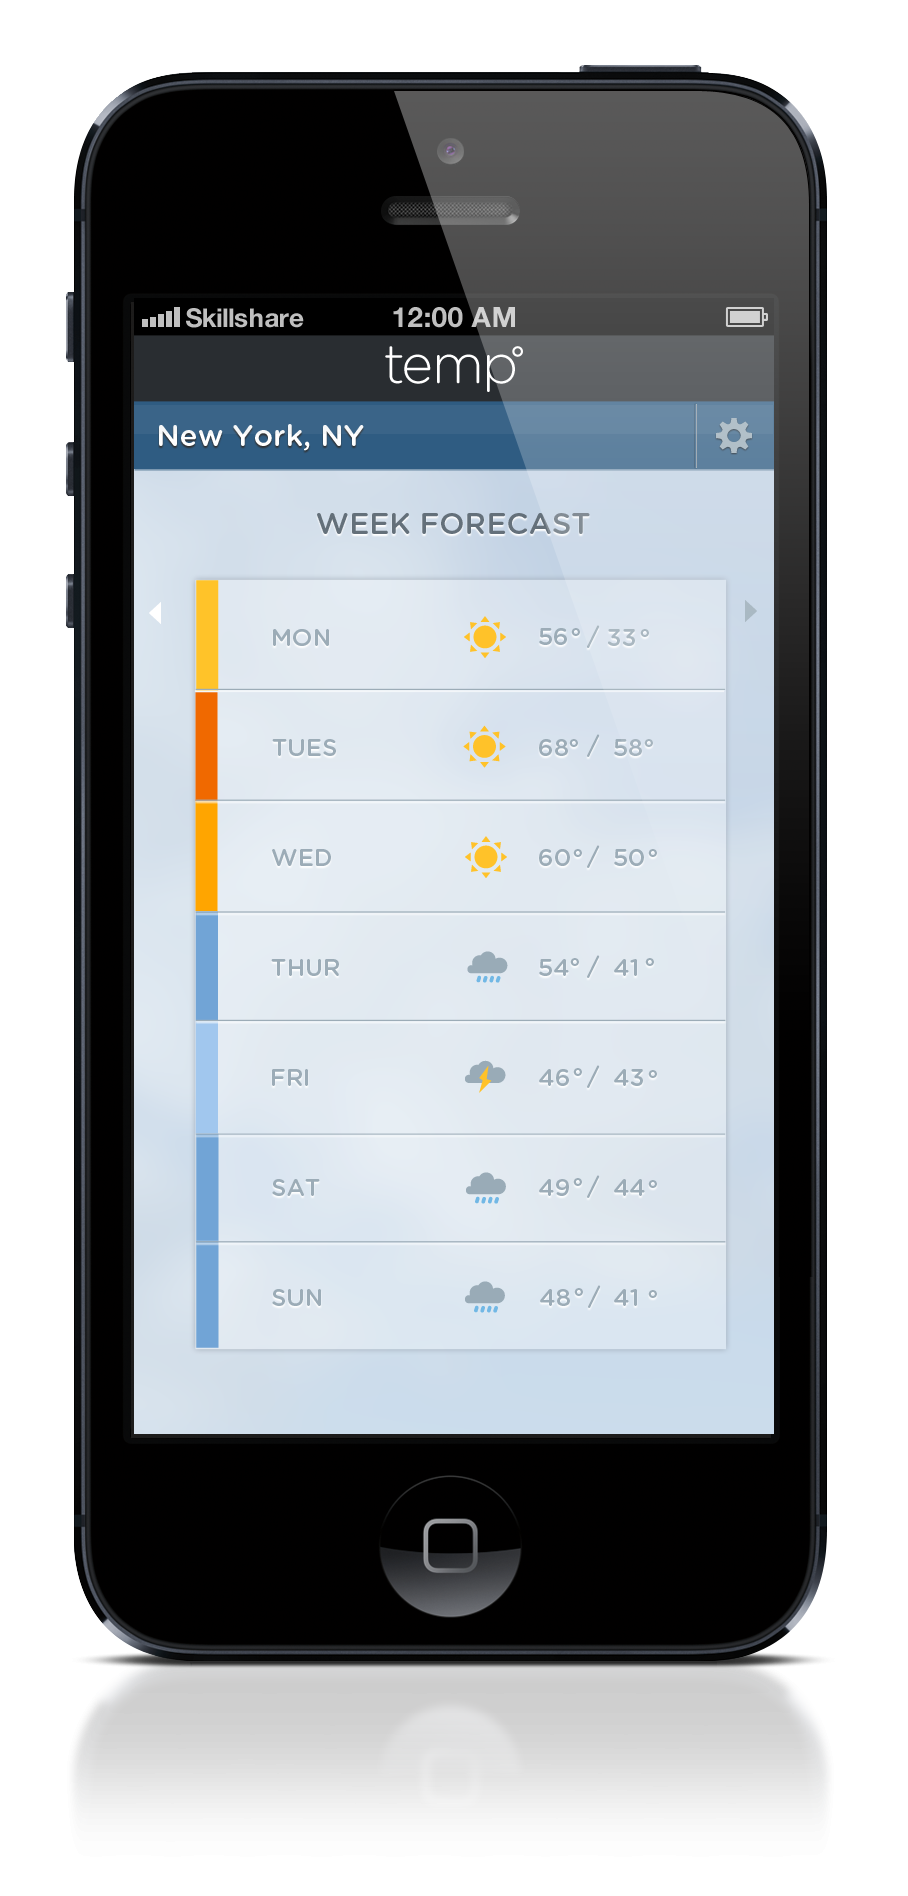 Color Bar Weather App - image 11 - student project